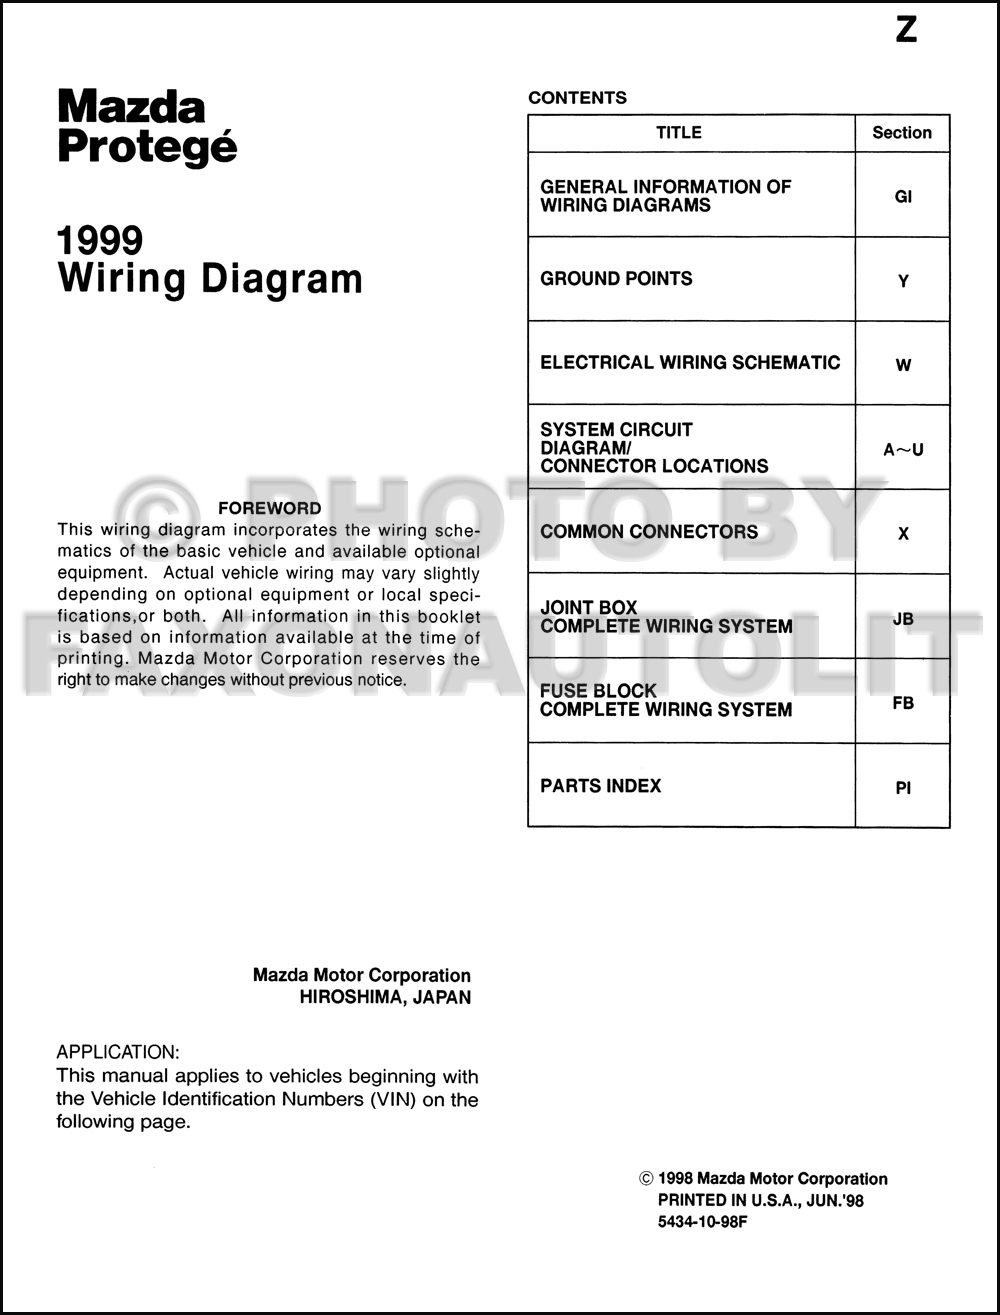 1999 Mazda Protege Wiring Diagram Manual Original 2002 626